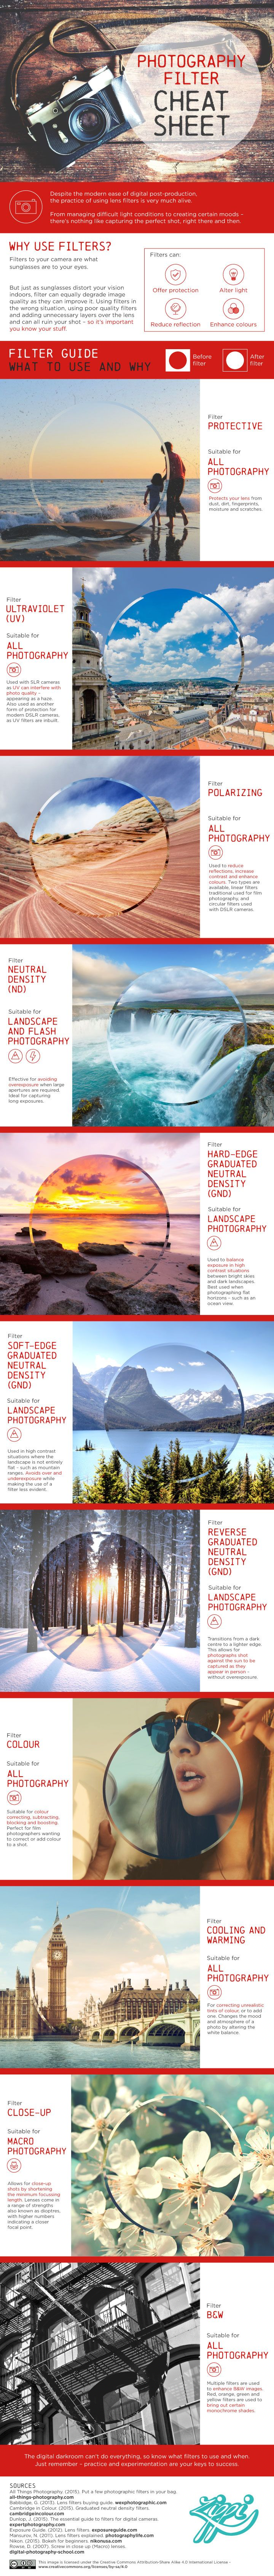 The Photography Filters Cheat Sheet #infographic